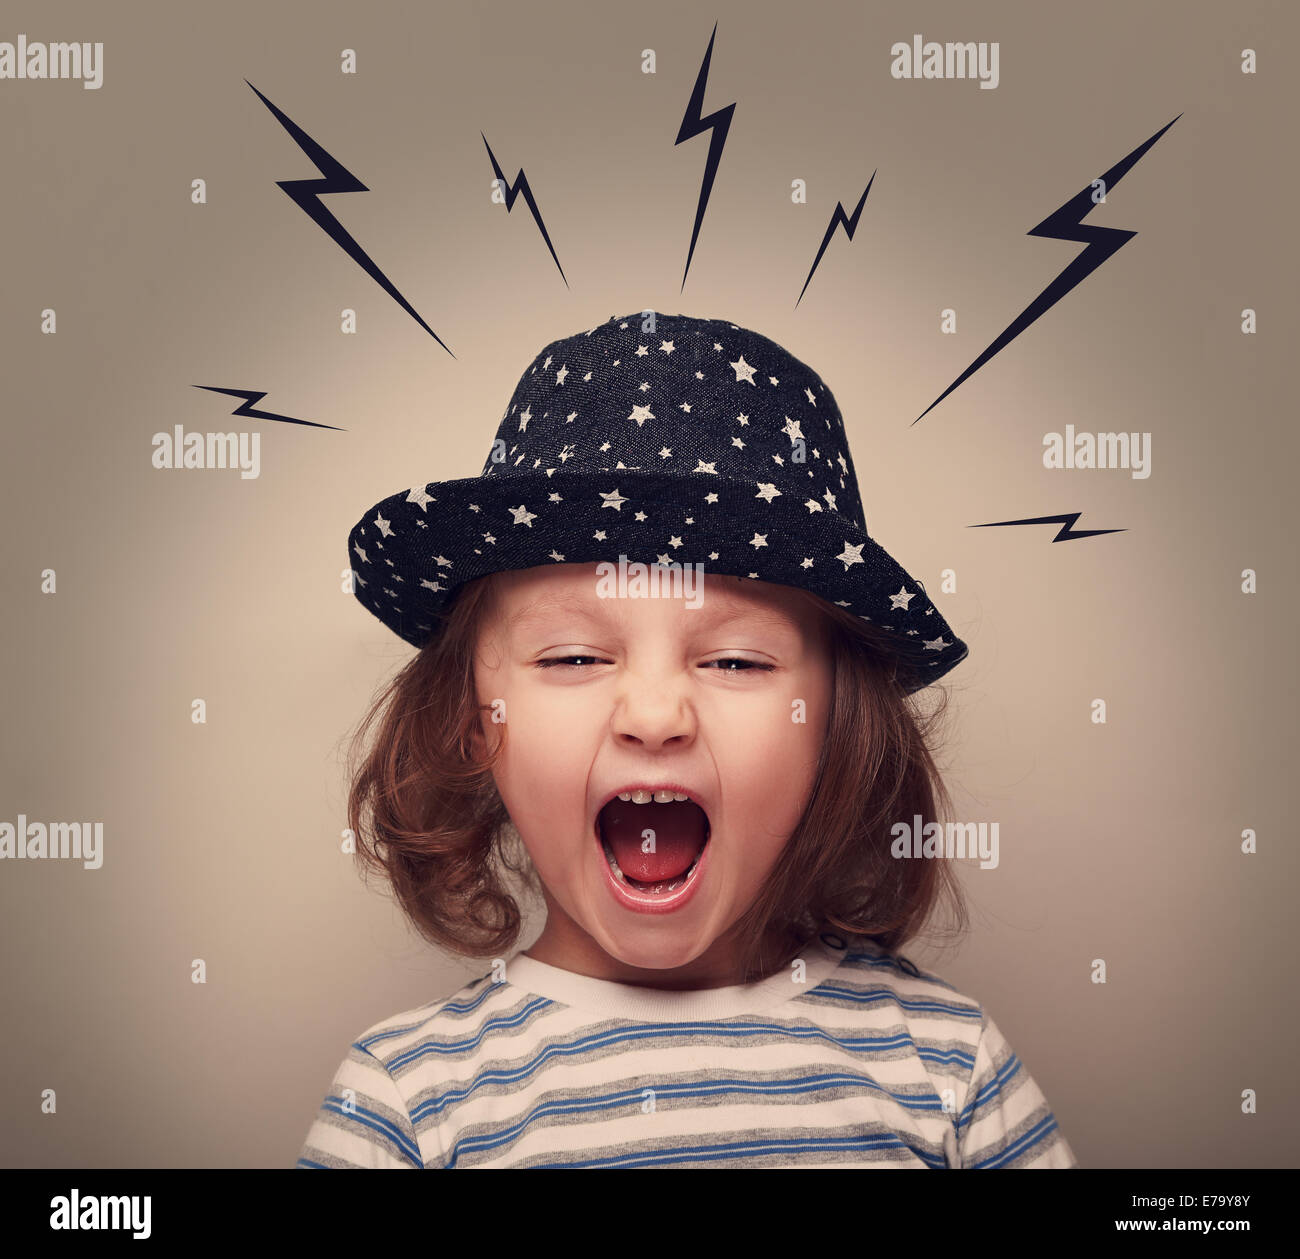 Angry shouting kid with lightnings above the head on grey background - Stock Image